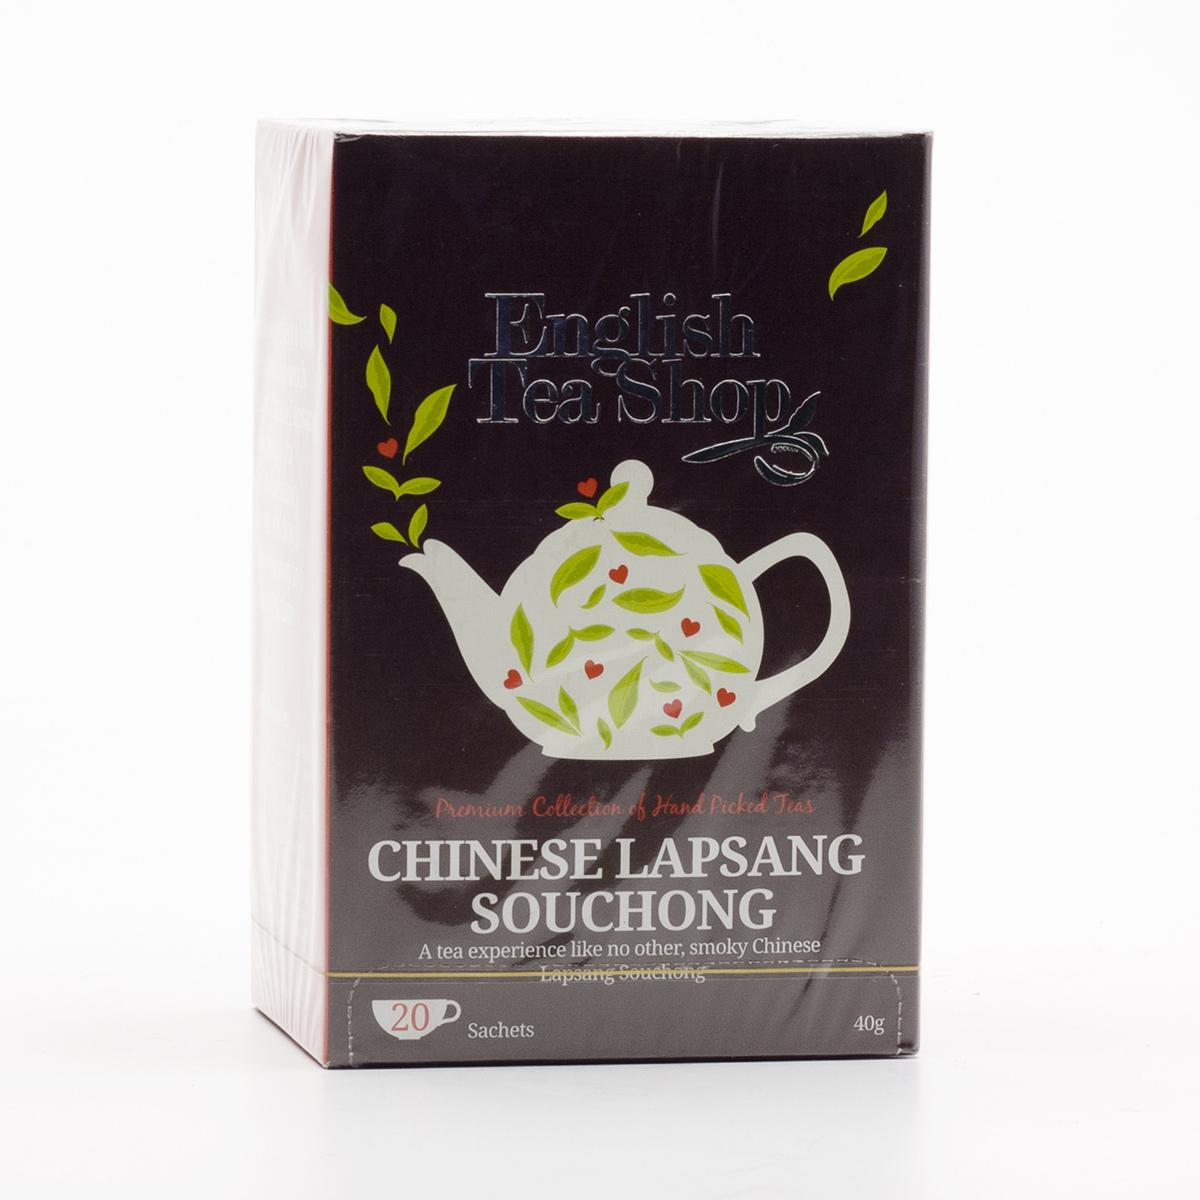 English Tea Shop Černý čaj Lapsang Souchong 20 ks, 40 g